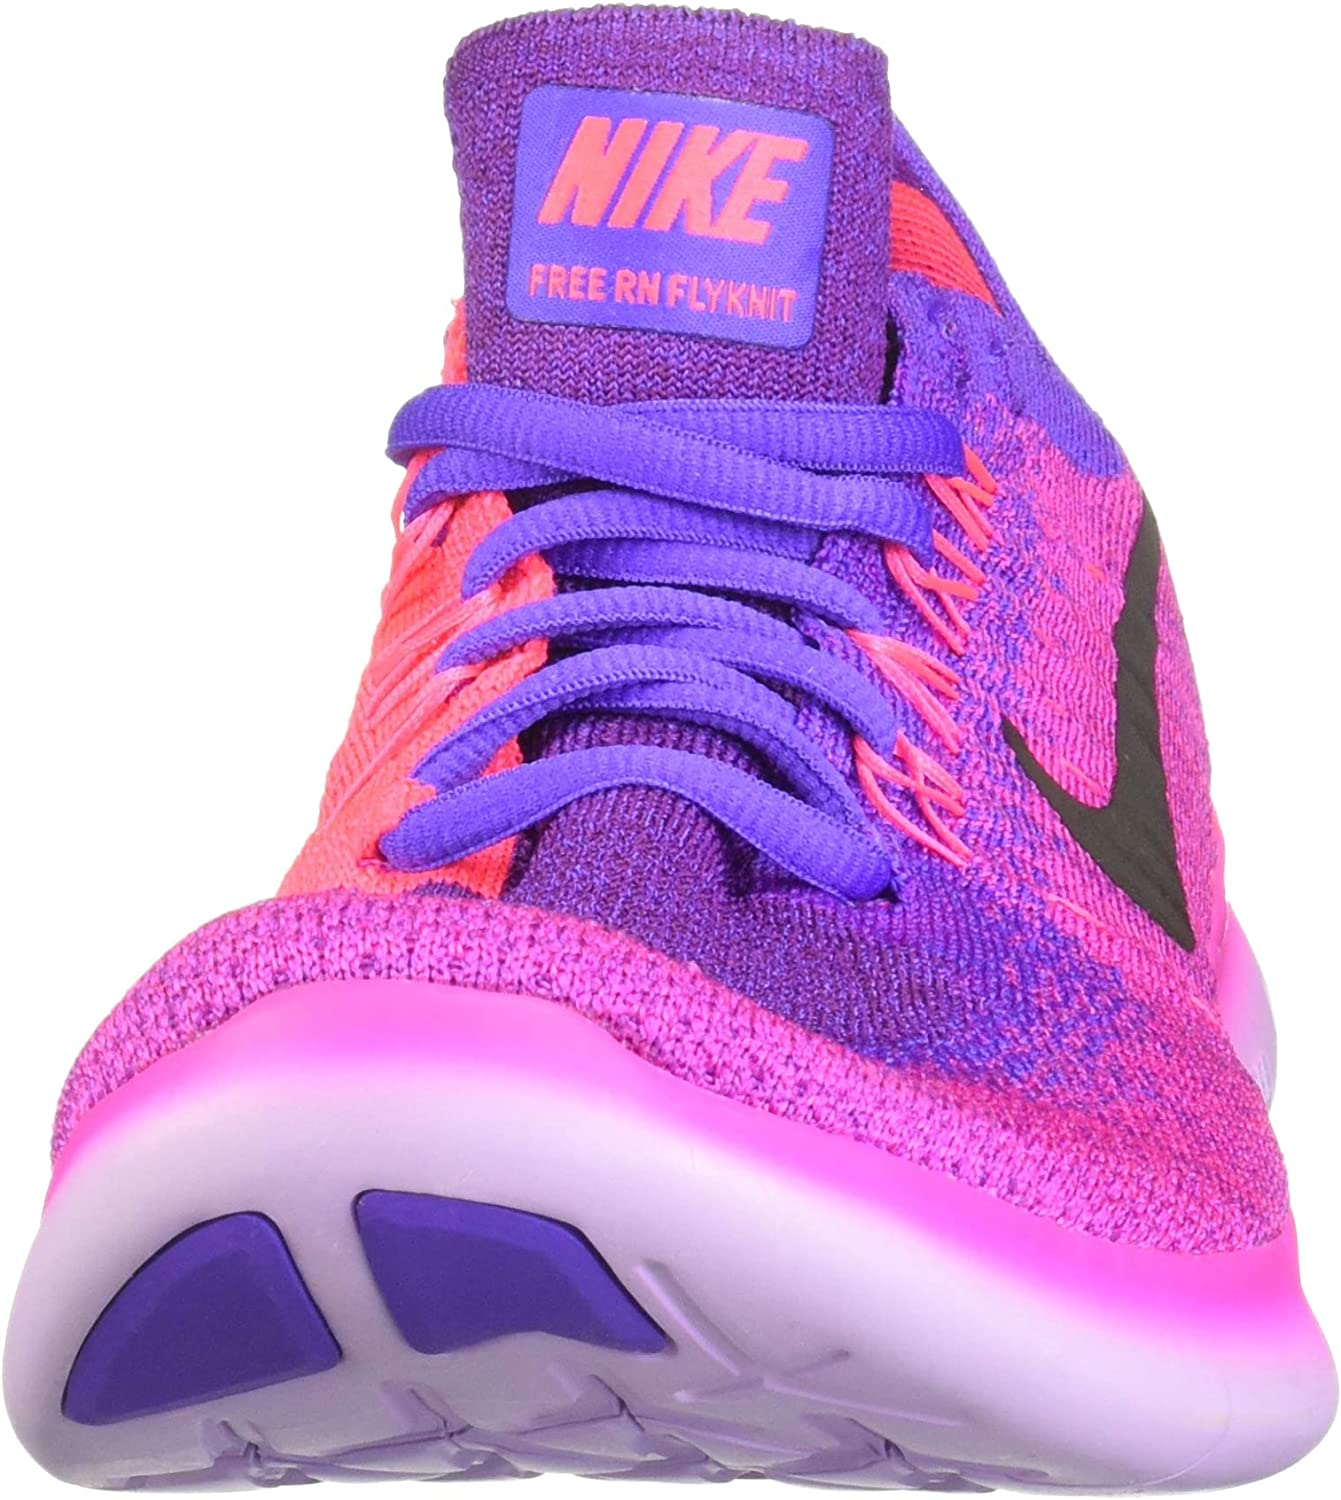 Nike Wmns Free Rn Flyknit 2017, Zapatillas de Trail Running para Mujer, Multicolor (Fire Pink/Black/Hyper Grape/Racer Pink 600), 37.5 EU: Amazon.es: Zapatos y complementos